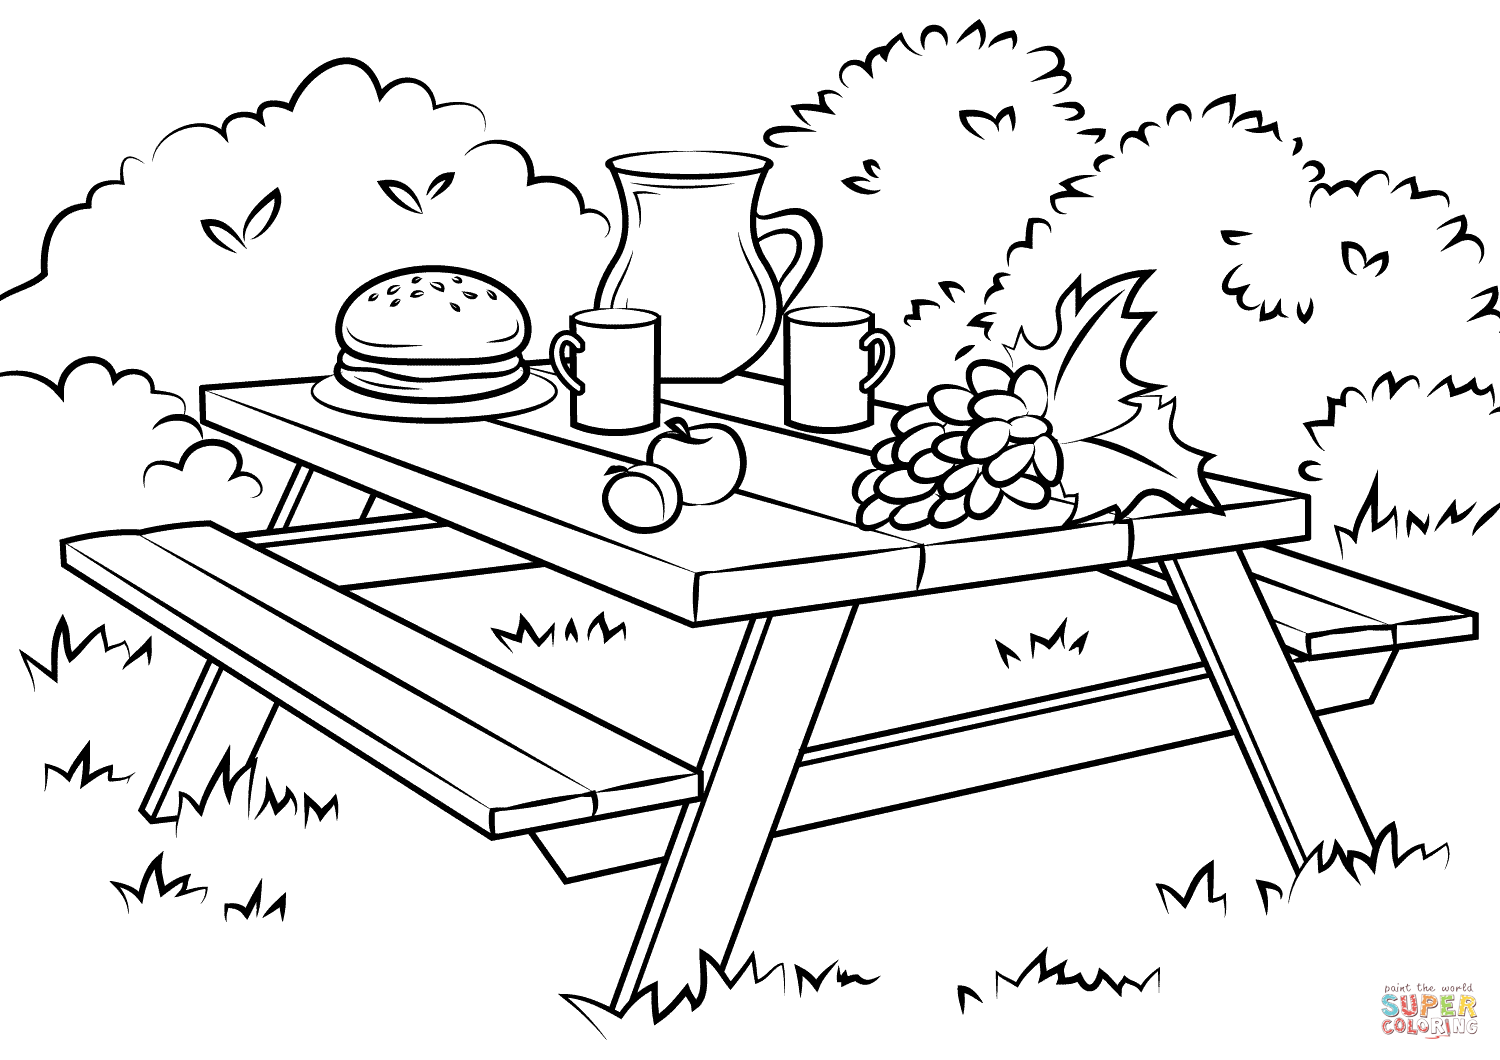 picnic table coloring page picnic table coloring page clipart panda free clipart page picnic coloring table